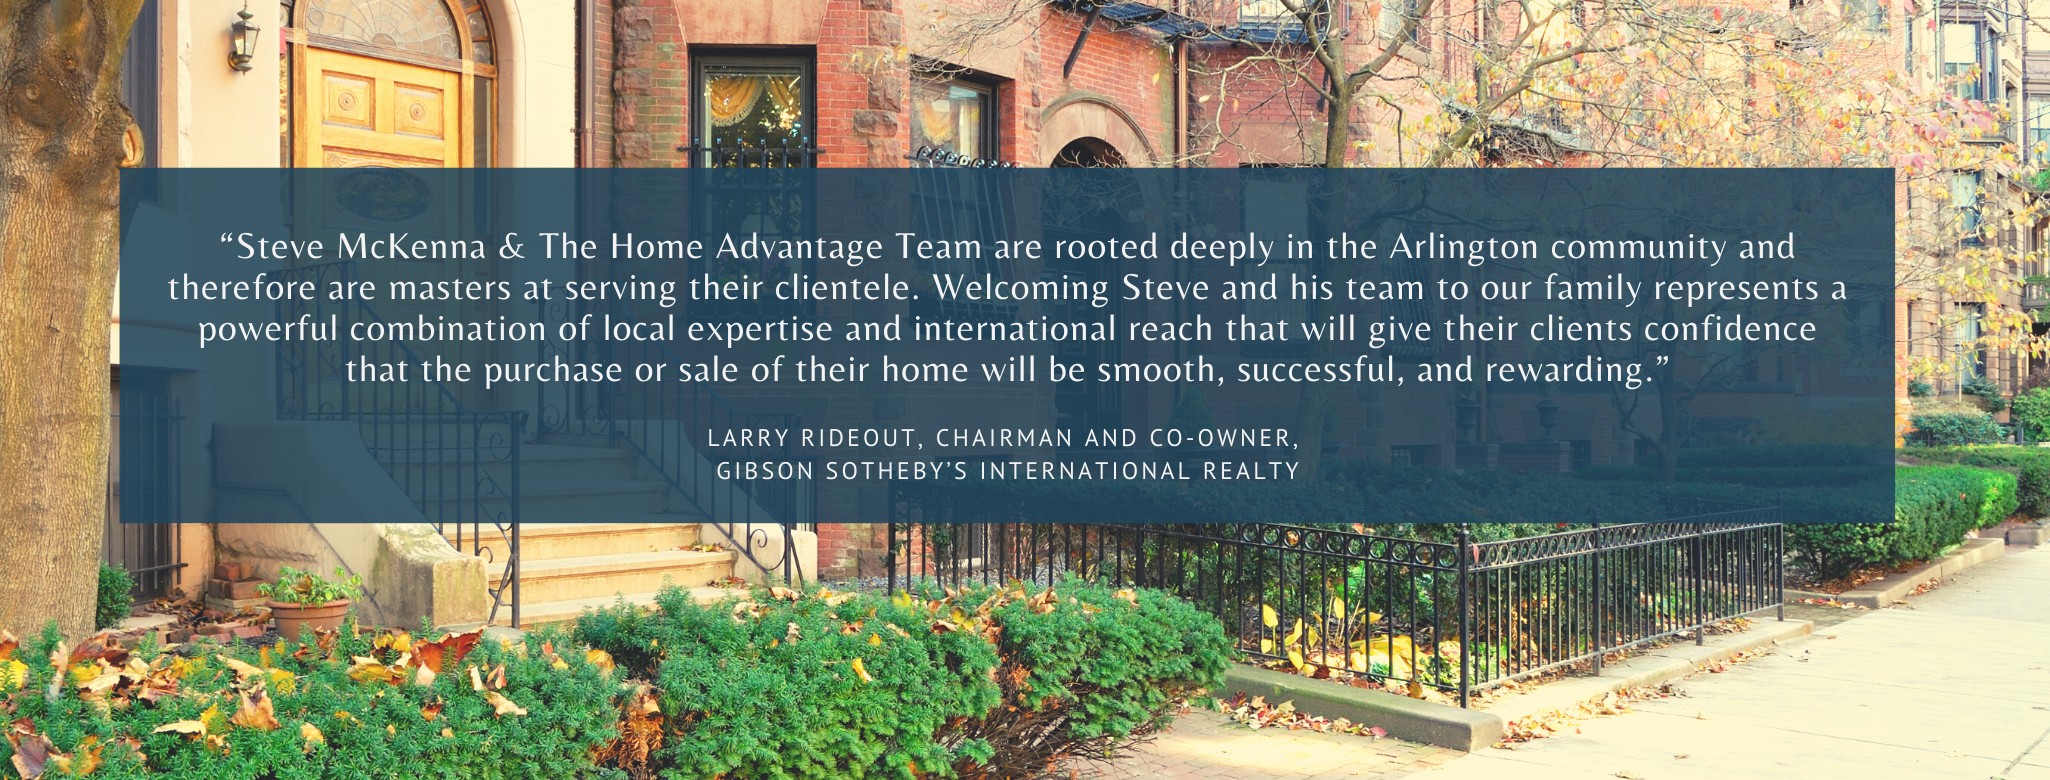 Steve McKenna & The Home Advantage Team along with Gibson Sotheby's International Realty offer clients both global reach and local expertise.